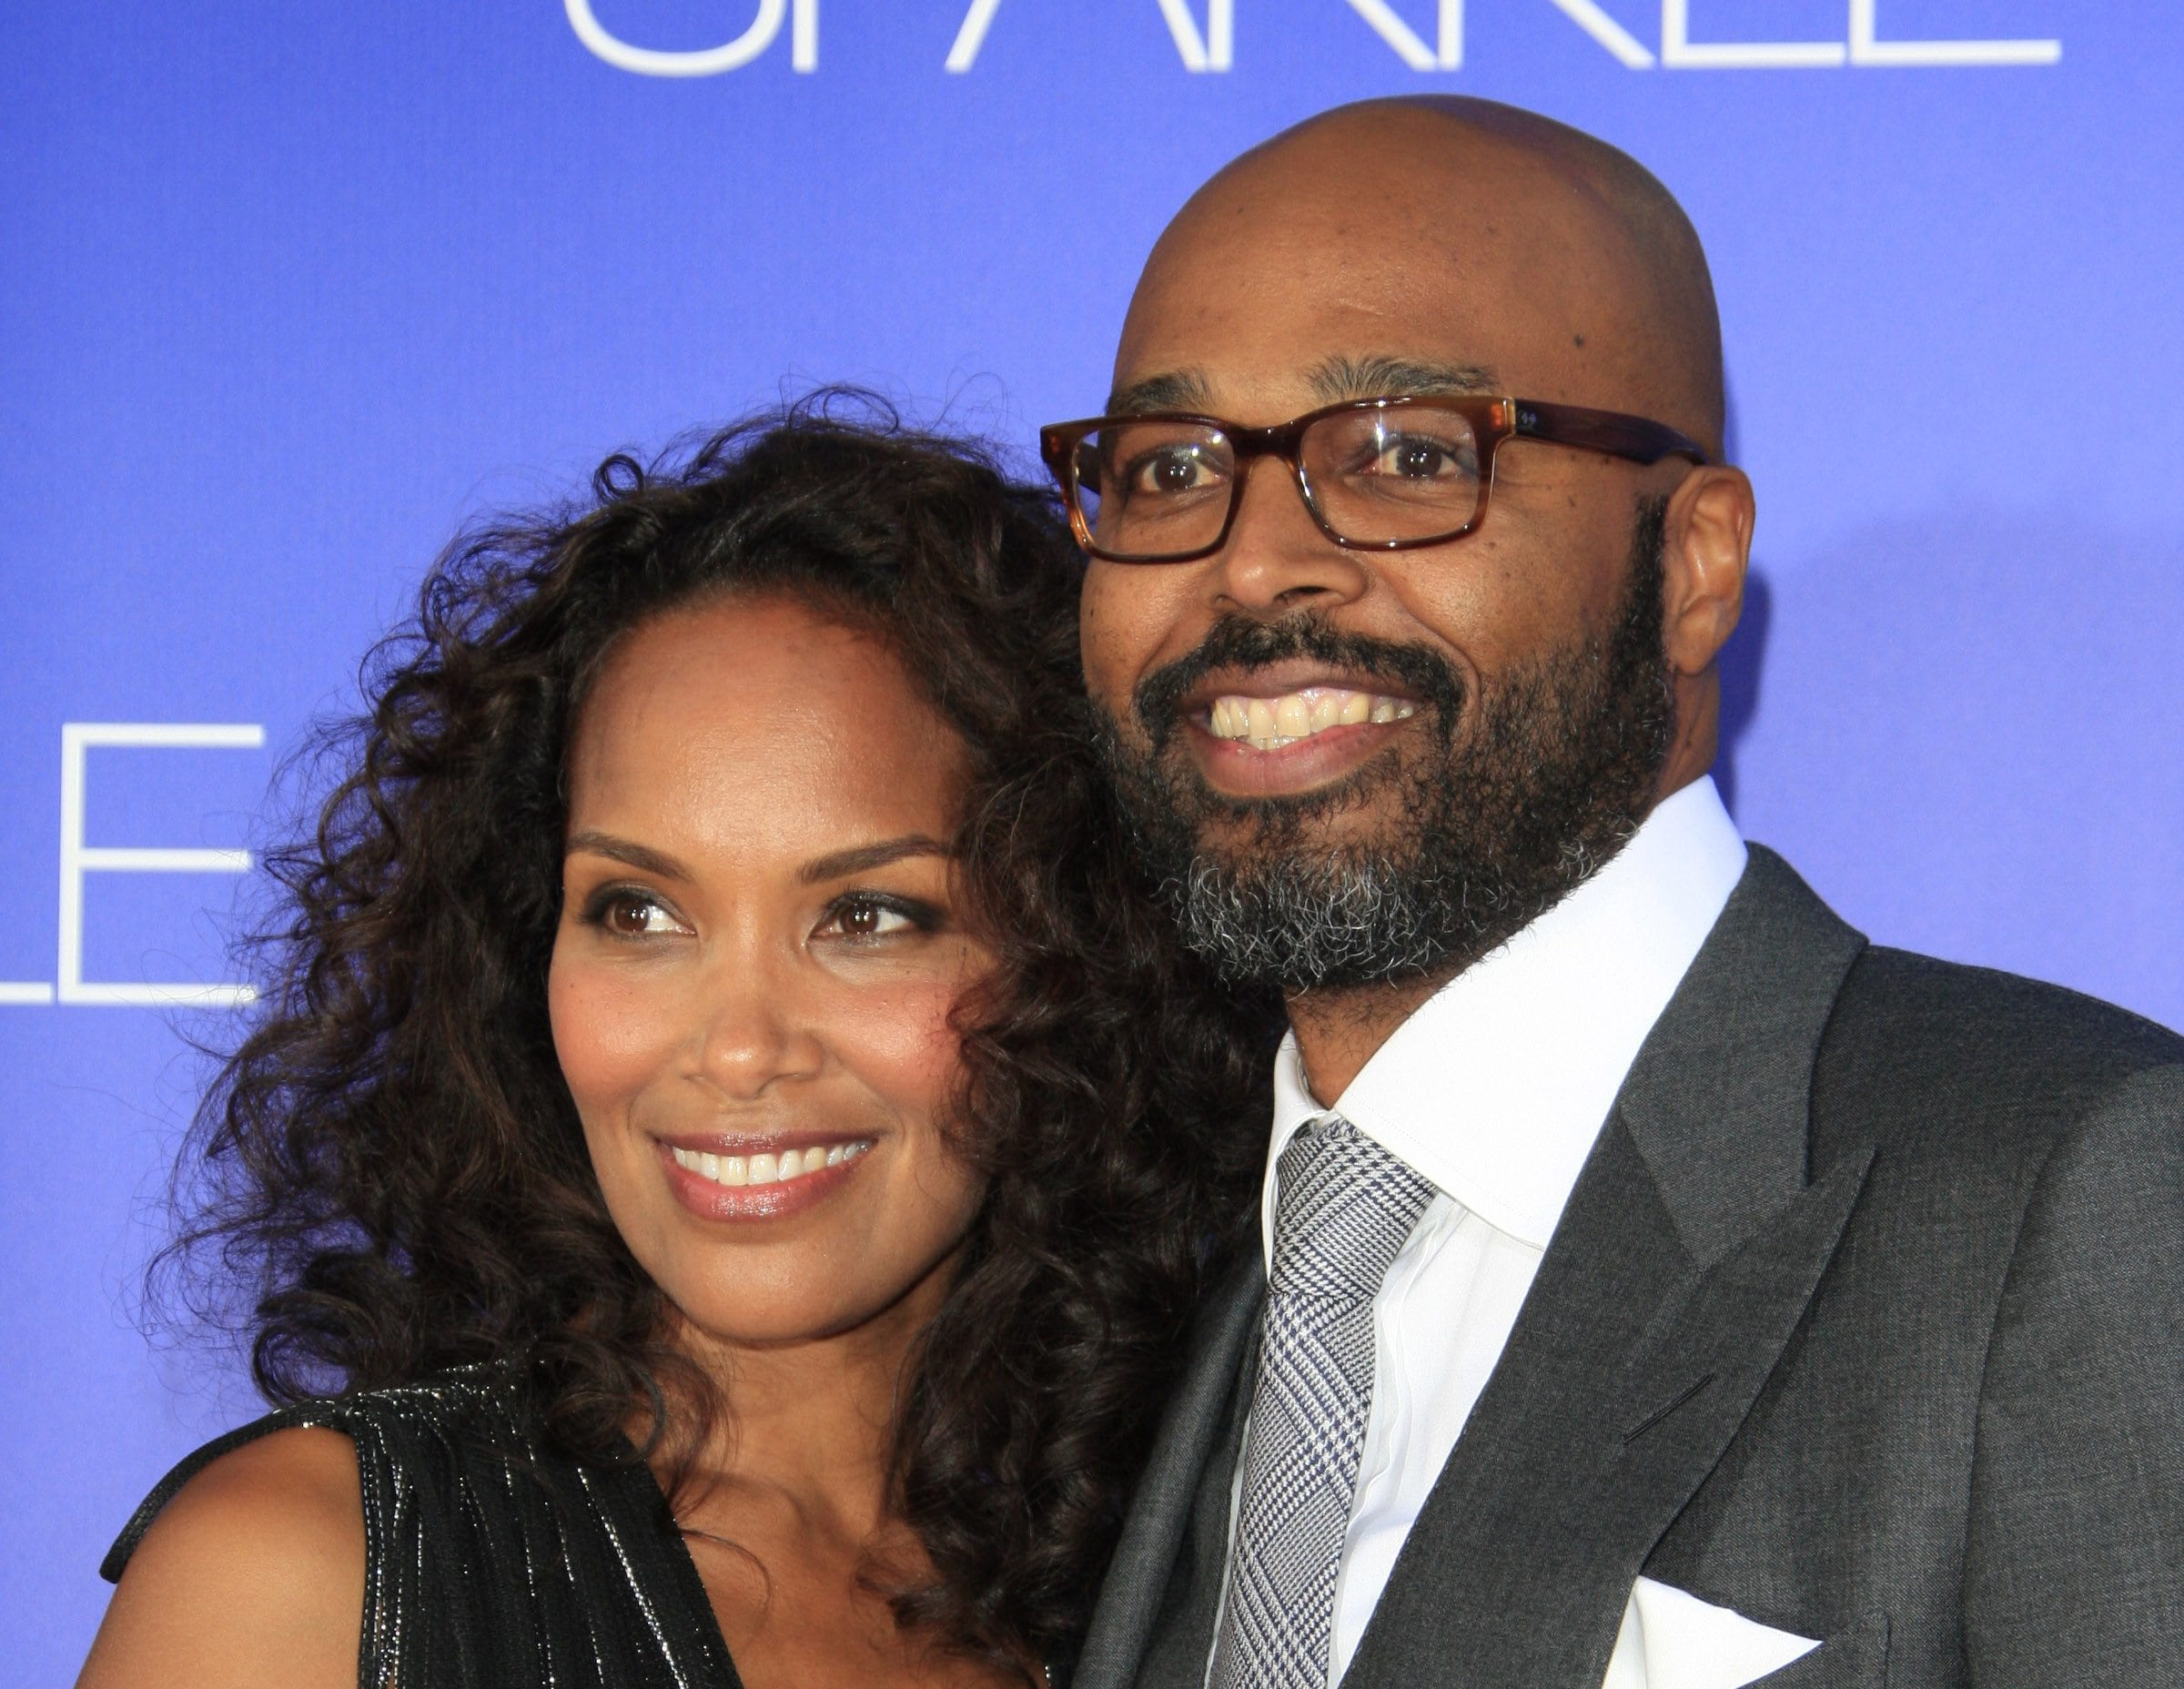 The Oprah Winfrey Network has ordered 'Love Is ___' ­from Mara Brock Akil and Salim Akil, a show based on their relationship and careers.